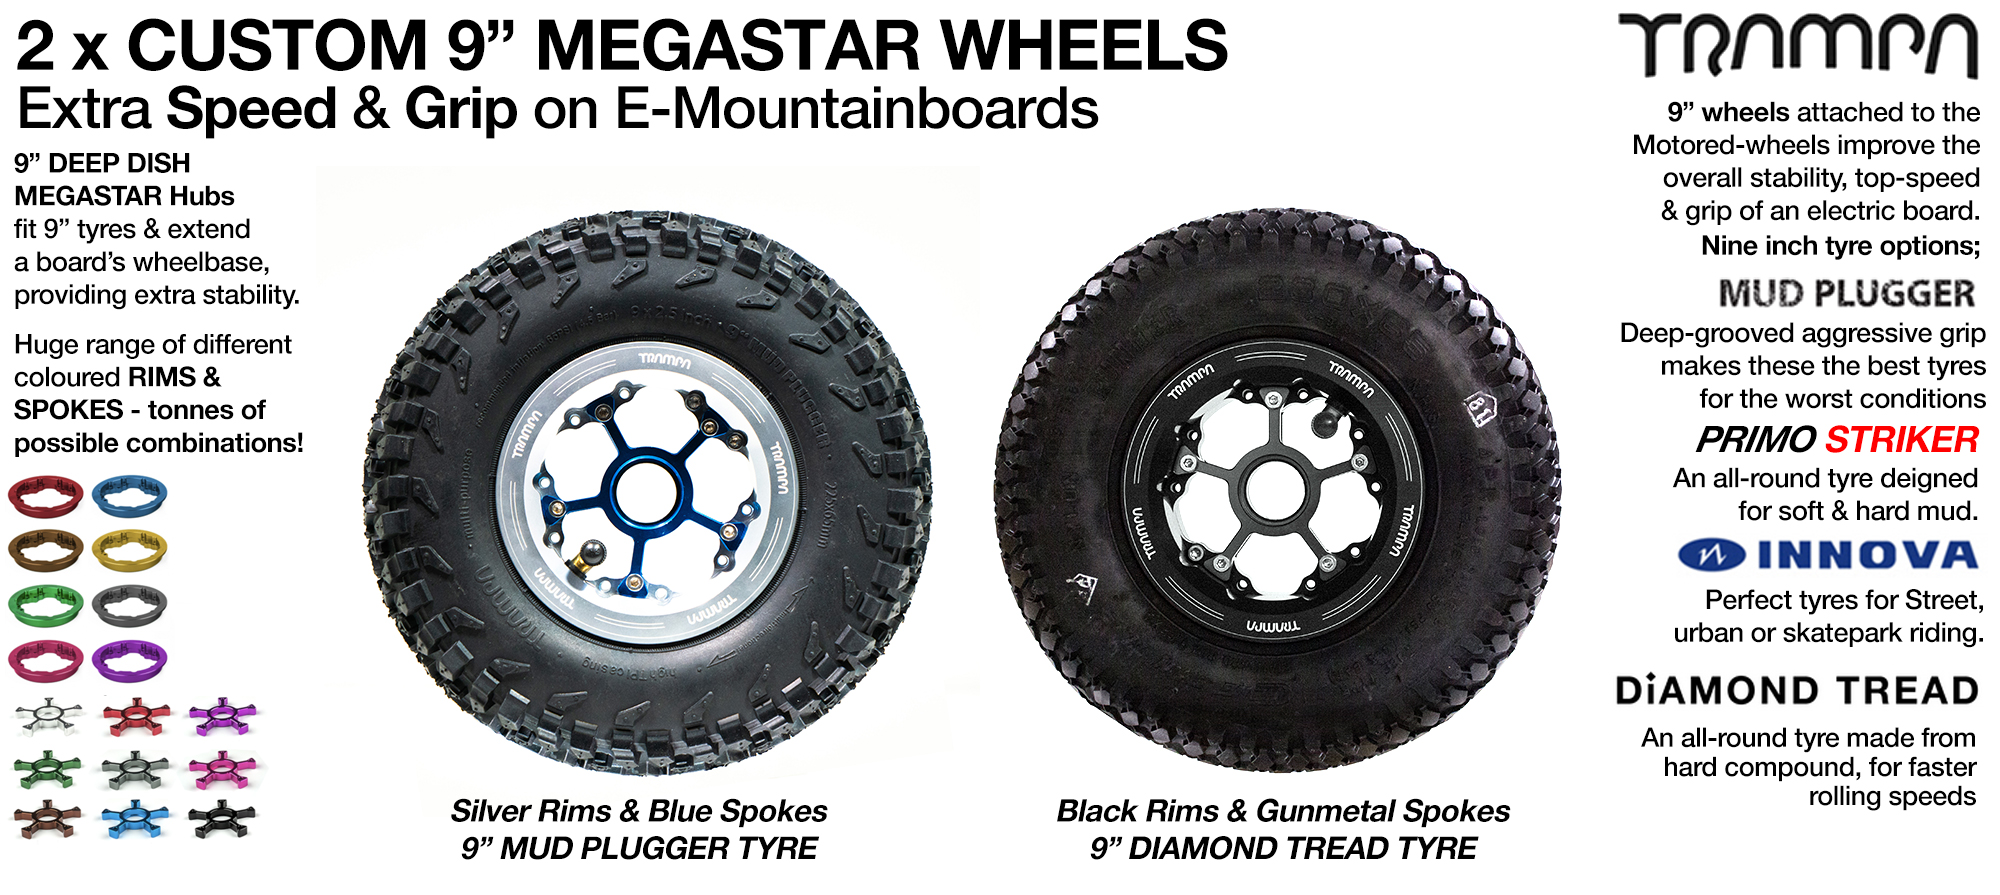 2x 9 inch MEGASTARS Wheel  Special offer for Complete Boards